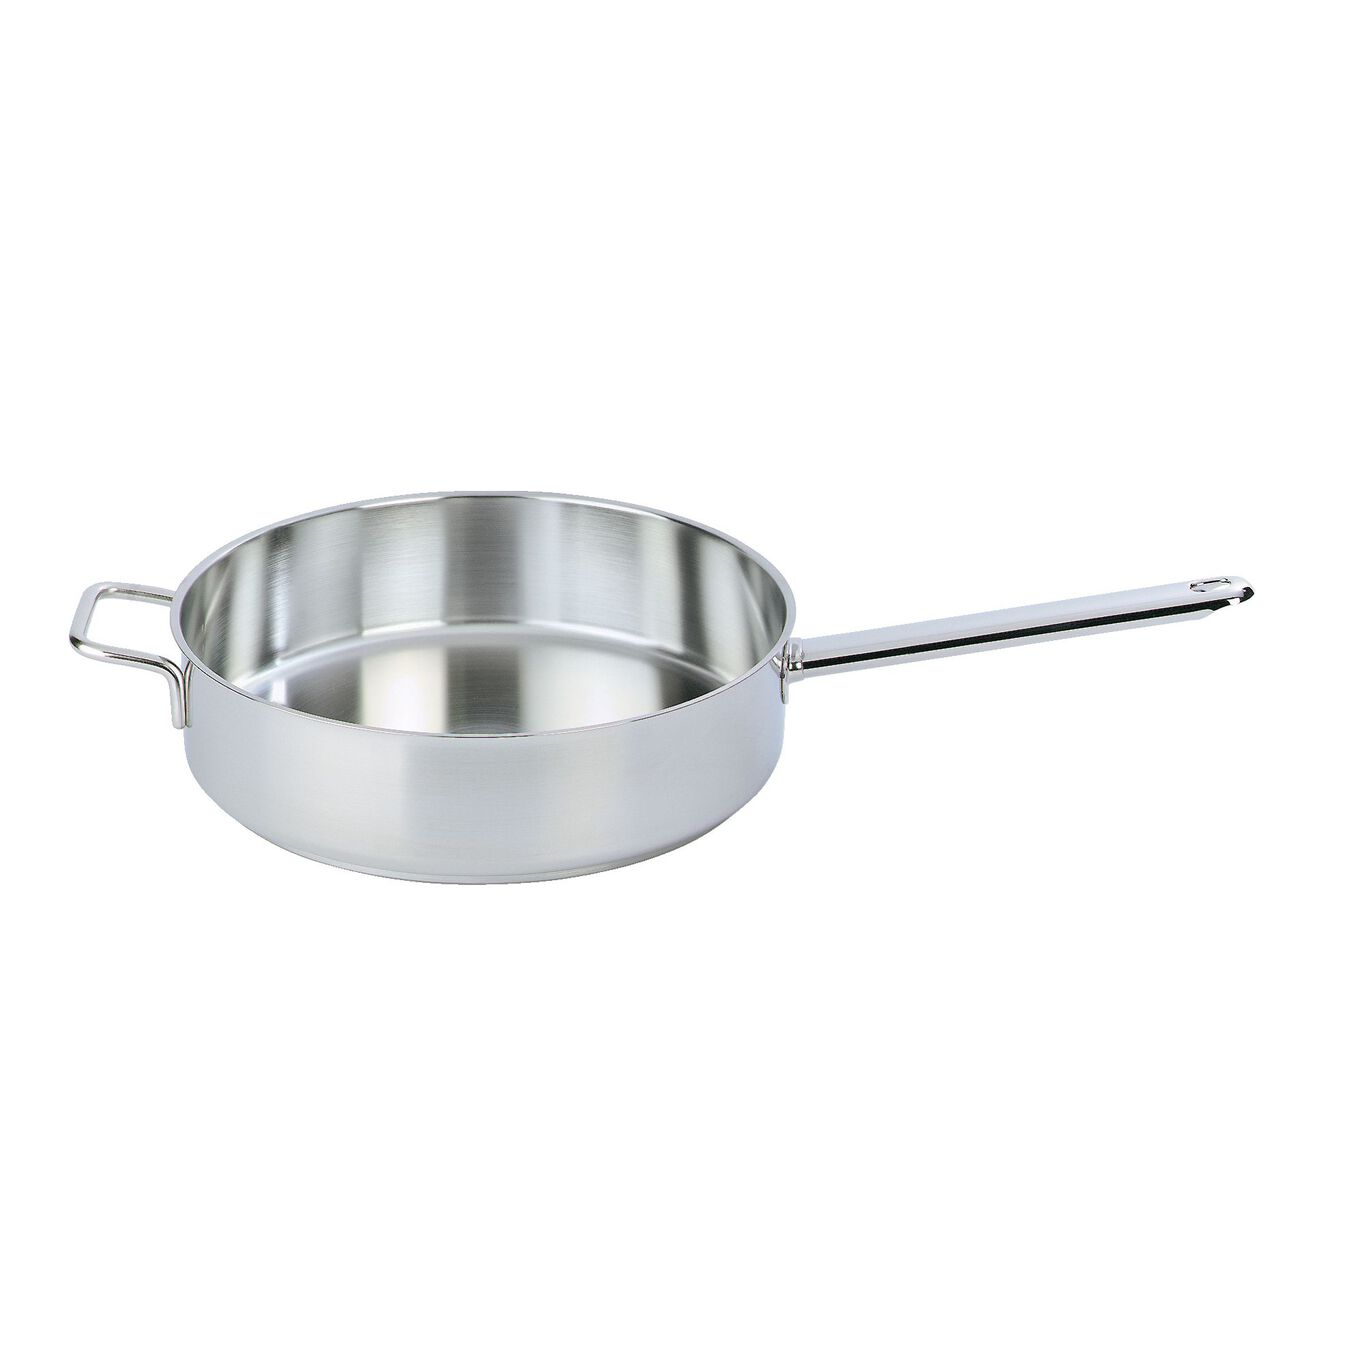 Sauteuse without lid 28 cm, Inox 18/10,,large 1